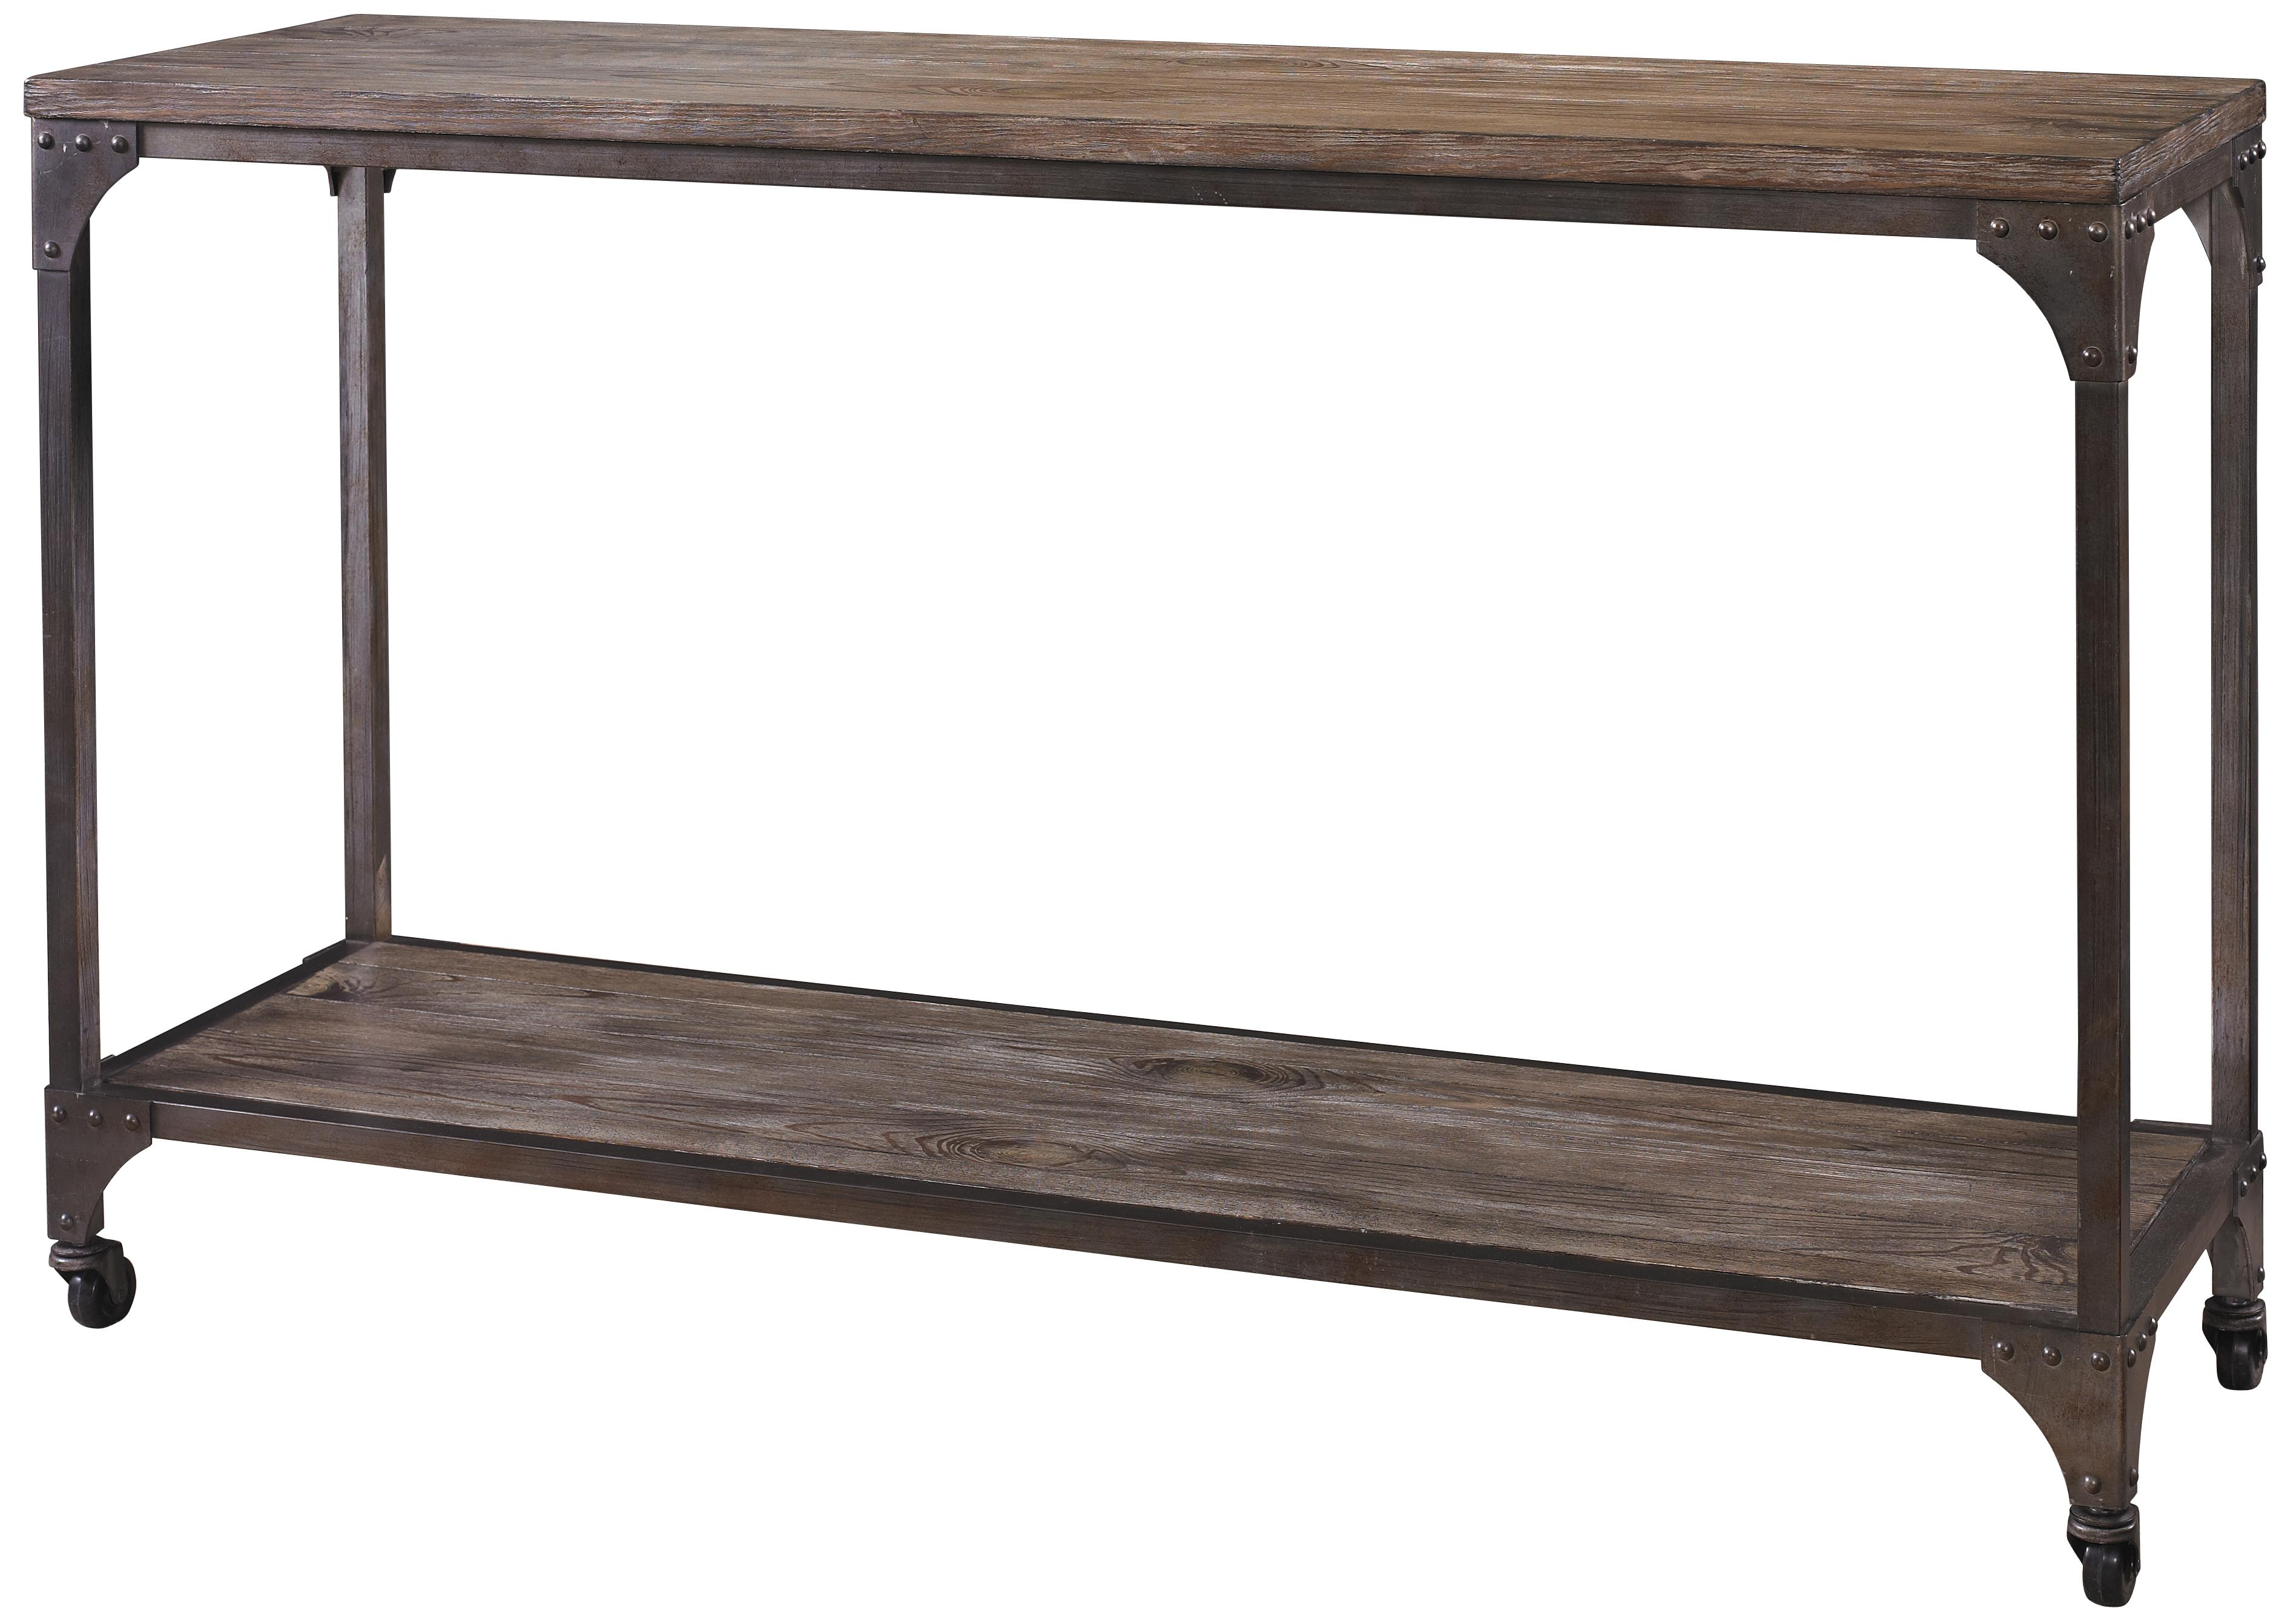 Powell Benjamin Console Table - Item Number: 958-225